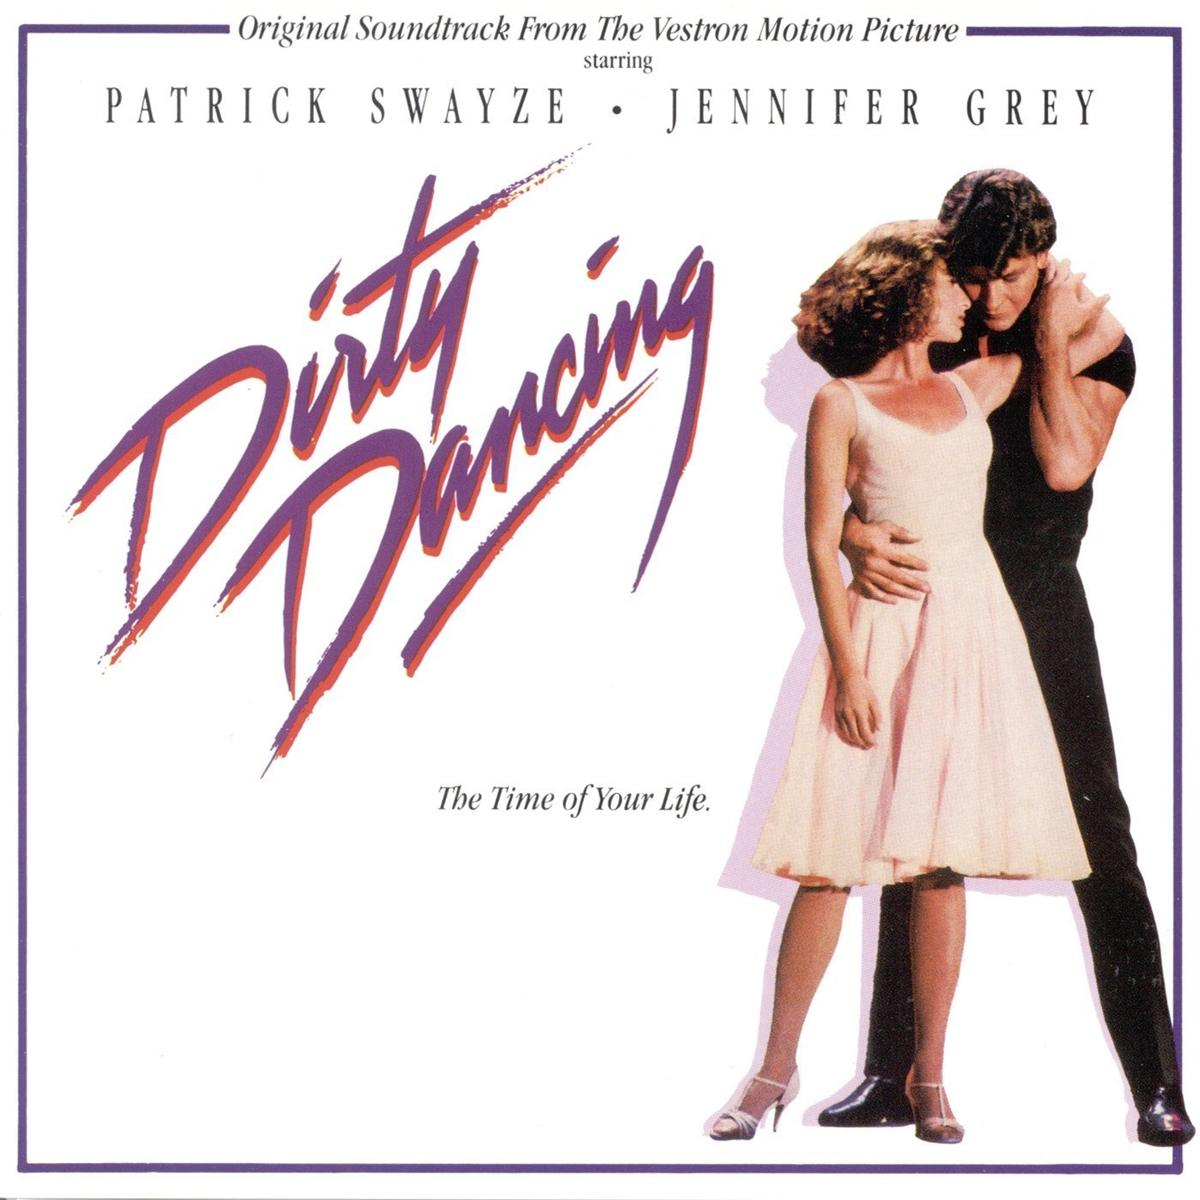 3 6 10 Film Soundtracks That Will Transport You Back To The 80s!